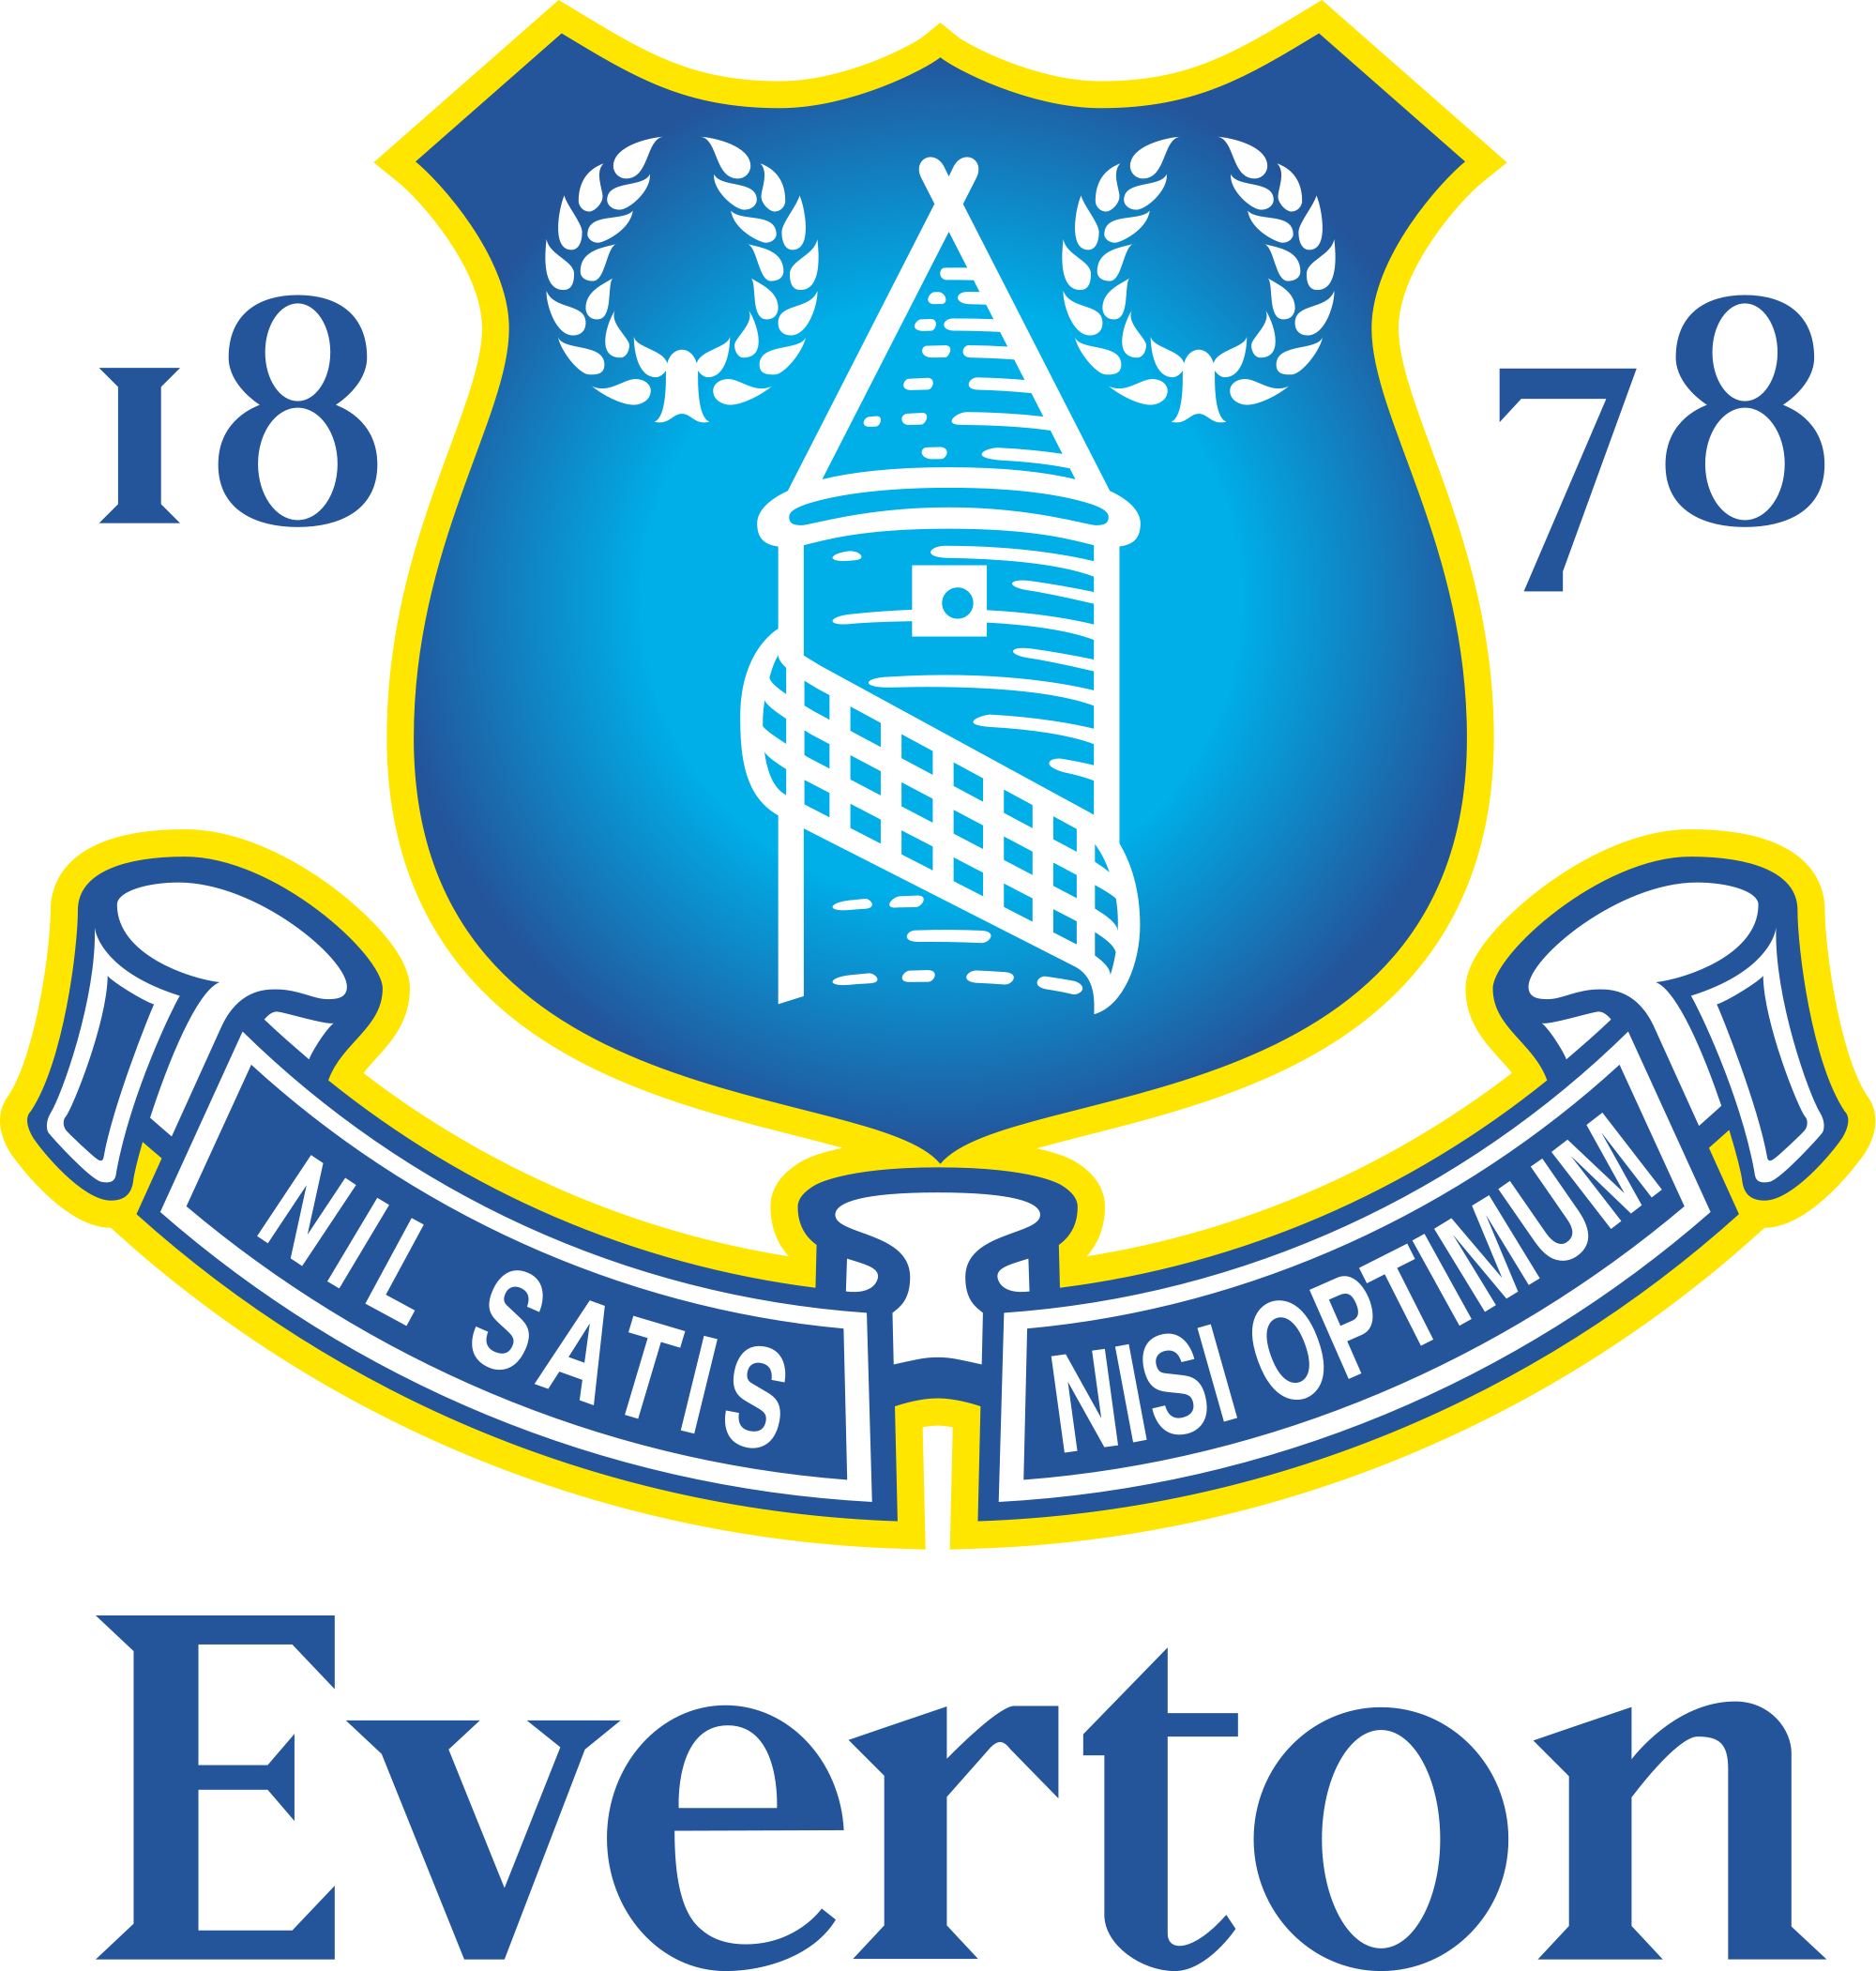 Everton Football Club are an English professional